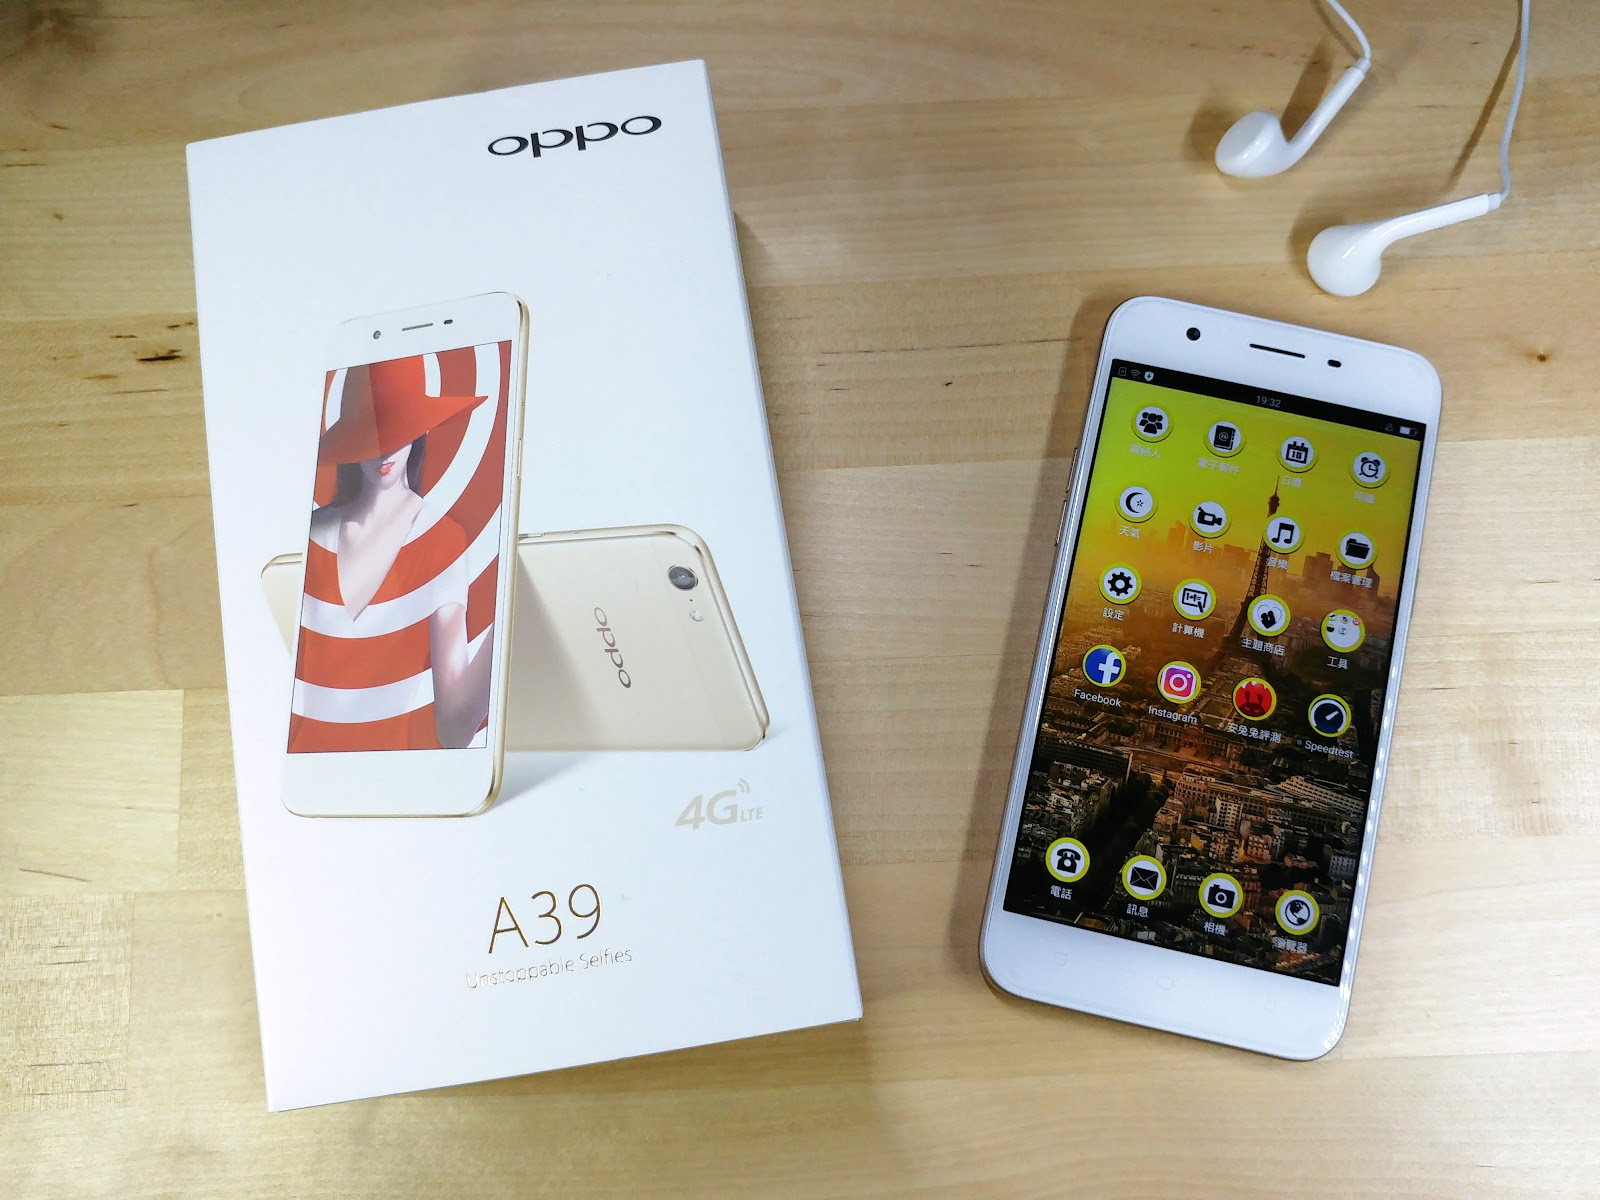 Oppo A39 114127 Cool3c 3 32 Gb